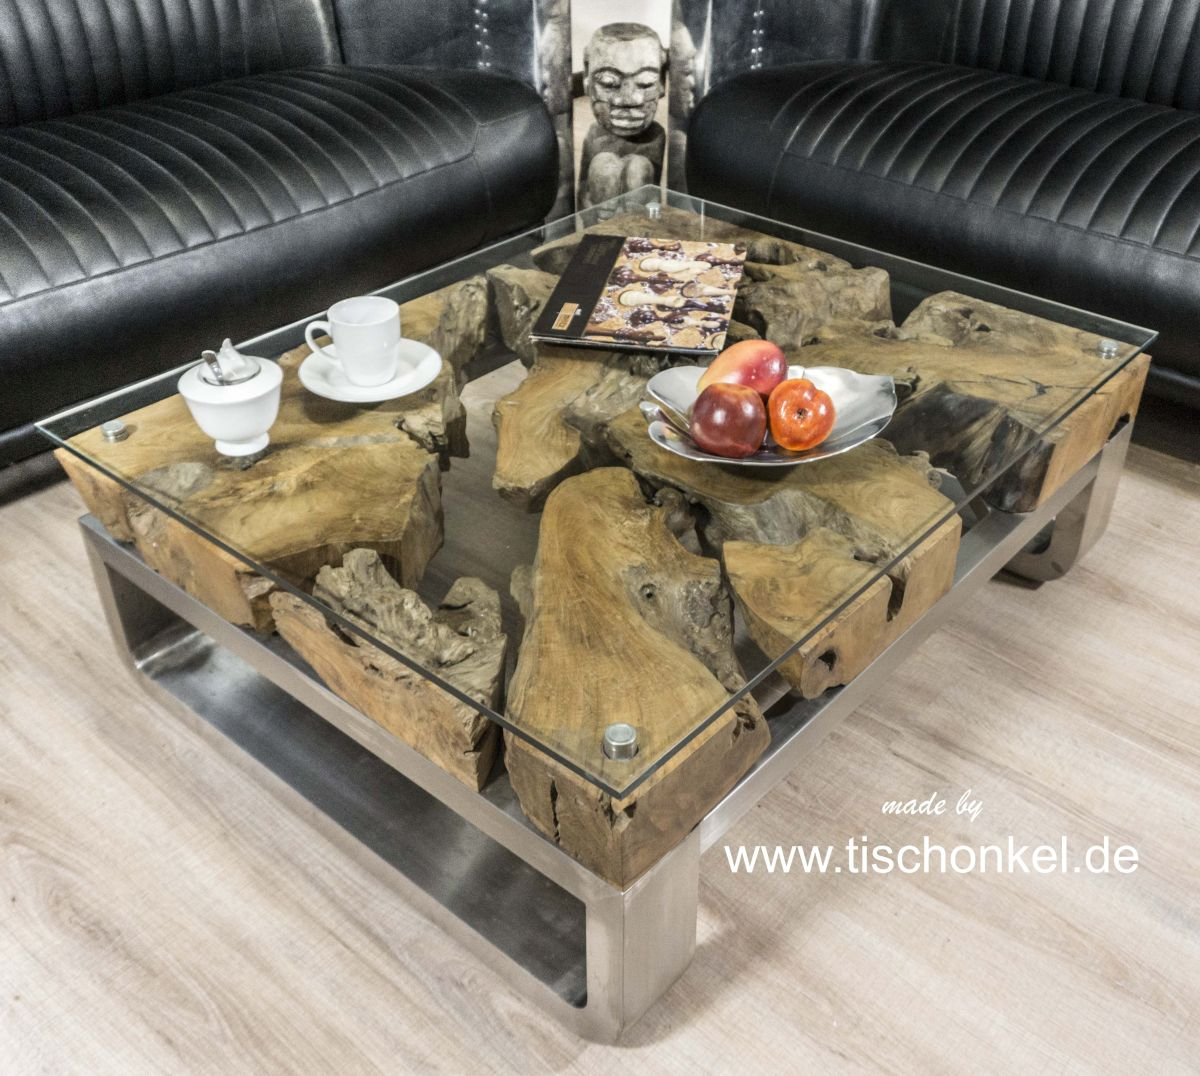 couchtisch aus glas der tischonkel. Black Bedroom Furniture Sets. Home Design Ideas